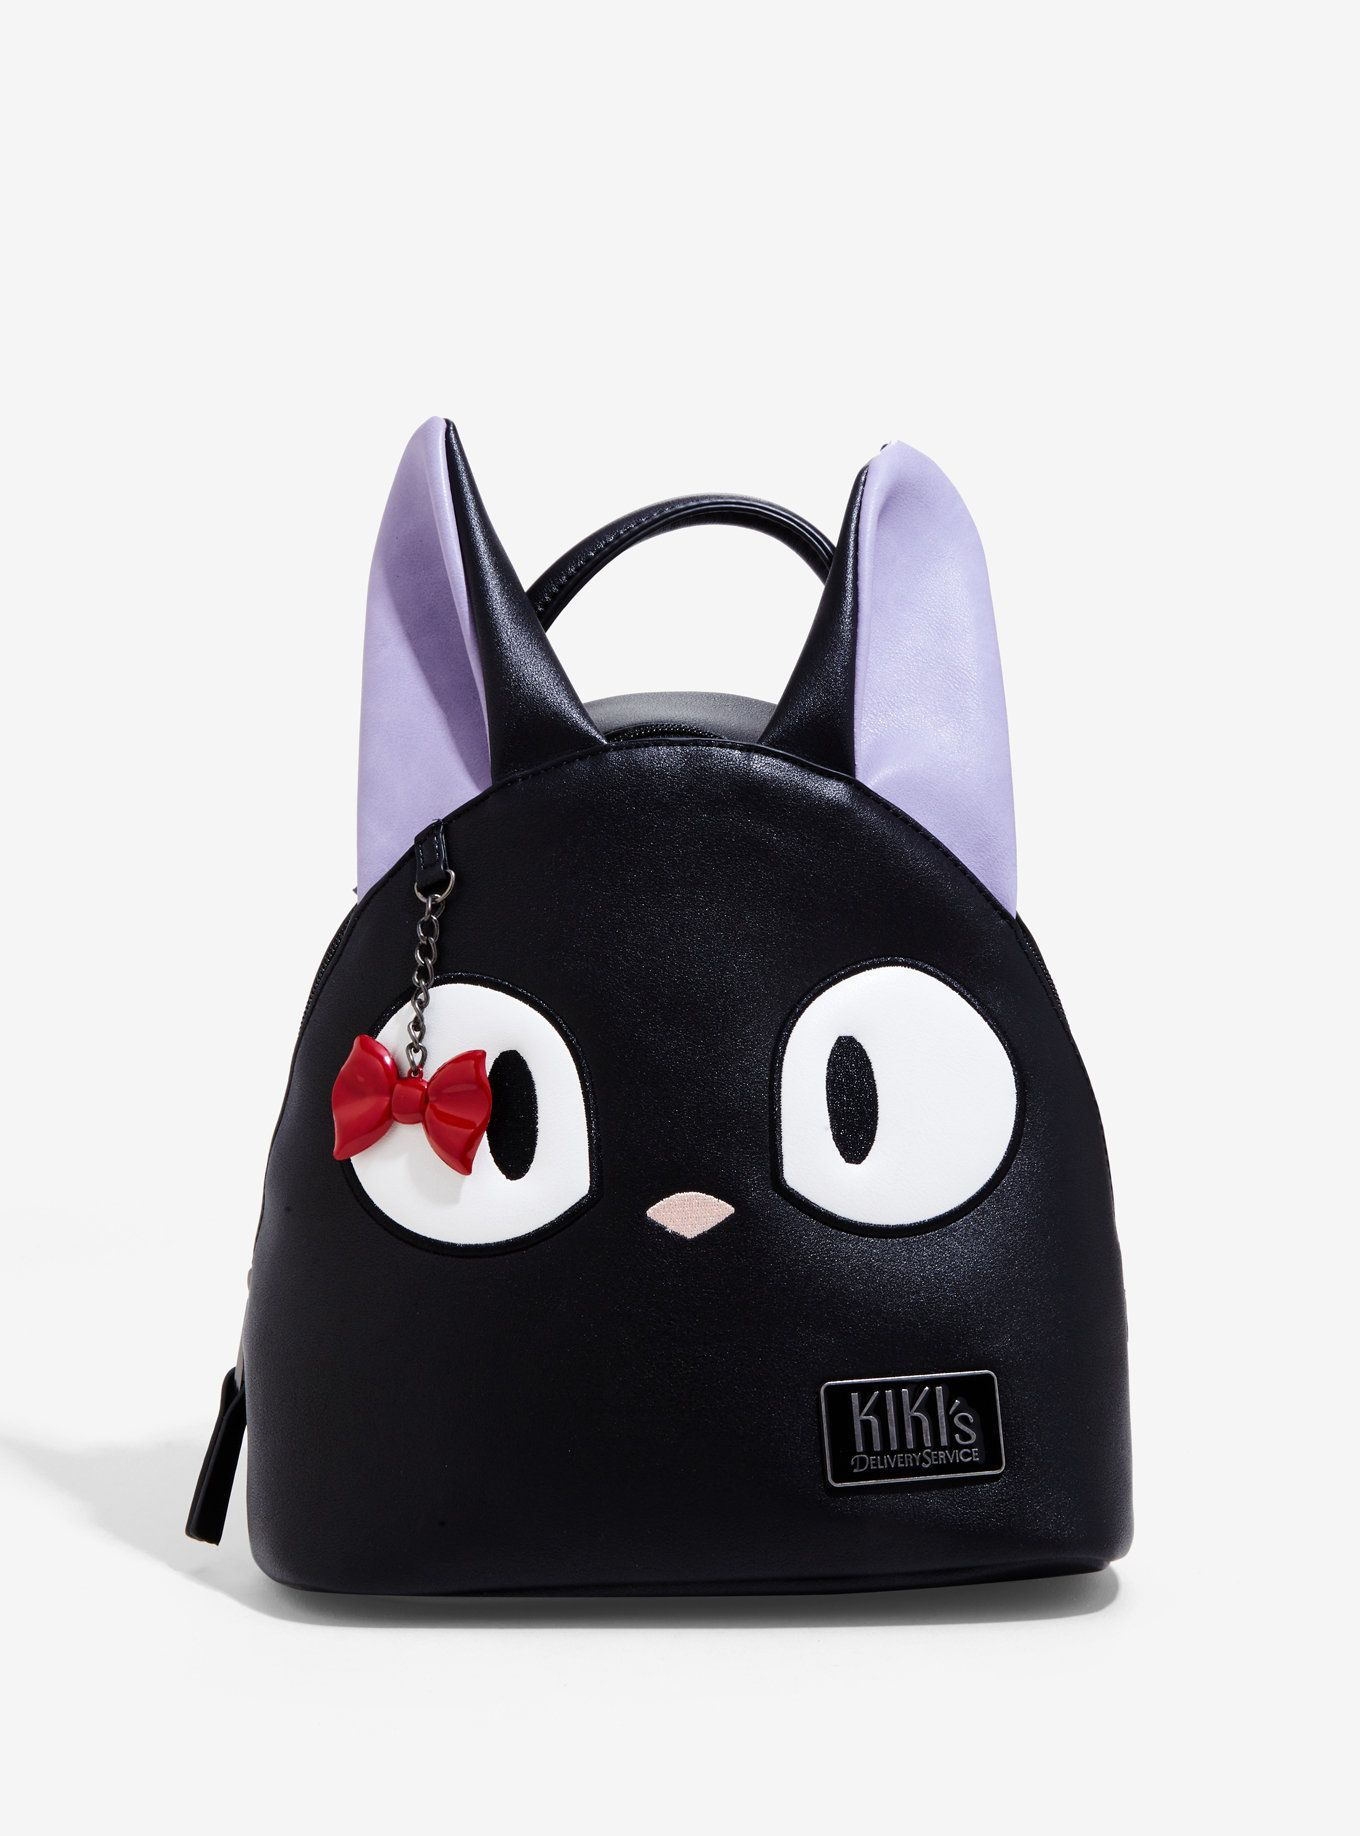 5b8f5f0c3d28 You favorite companion cat has been turned into a mini backpack! This black mini  backpack features Jiji s adorable face and a dangling bow bag charm!